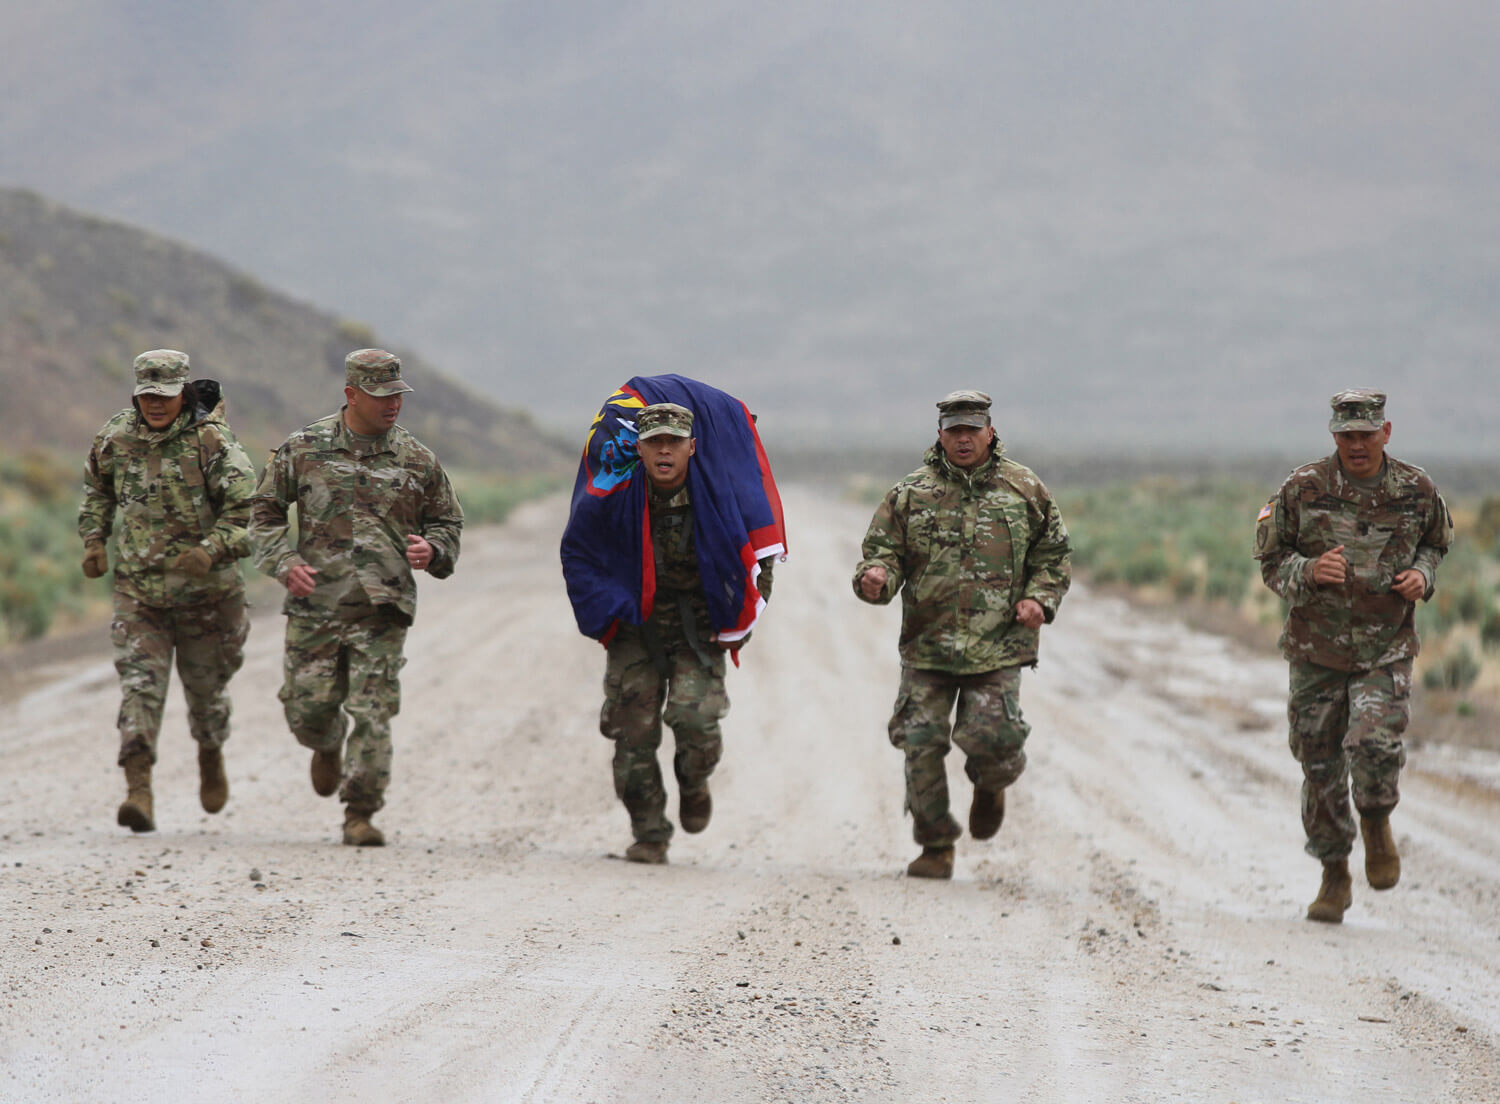 SGT Jermain Mendiola, center, of the Guam Army National Guard, enters the finish line of a grueling 12-mile ruck march May 23 in Hawthorne, Nev., during the 2019 Army National Guard Region 7 Best Warrior Competition (BWC). SGT Mendiola is flanked by CSM Agnes Diaz, Guam National Guard senior enlisted advisor; SGM Bruce Meno; SSG Dino Cruz; and CSM Ron Brantley. The winner advances to the National Guard BWC later this year. California Army National Guard photo by SSG Eddie Siguenza